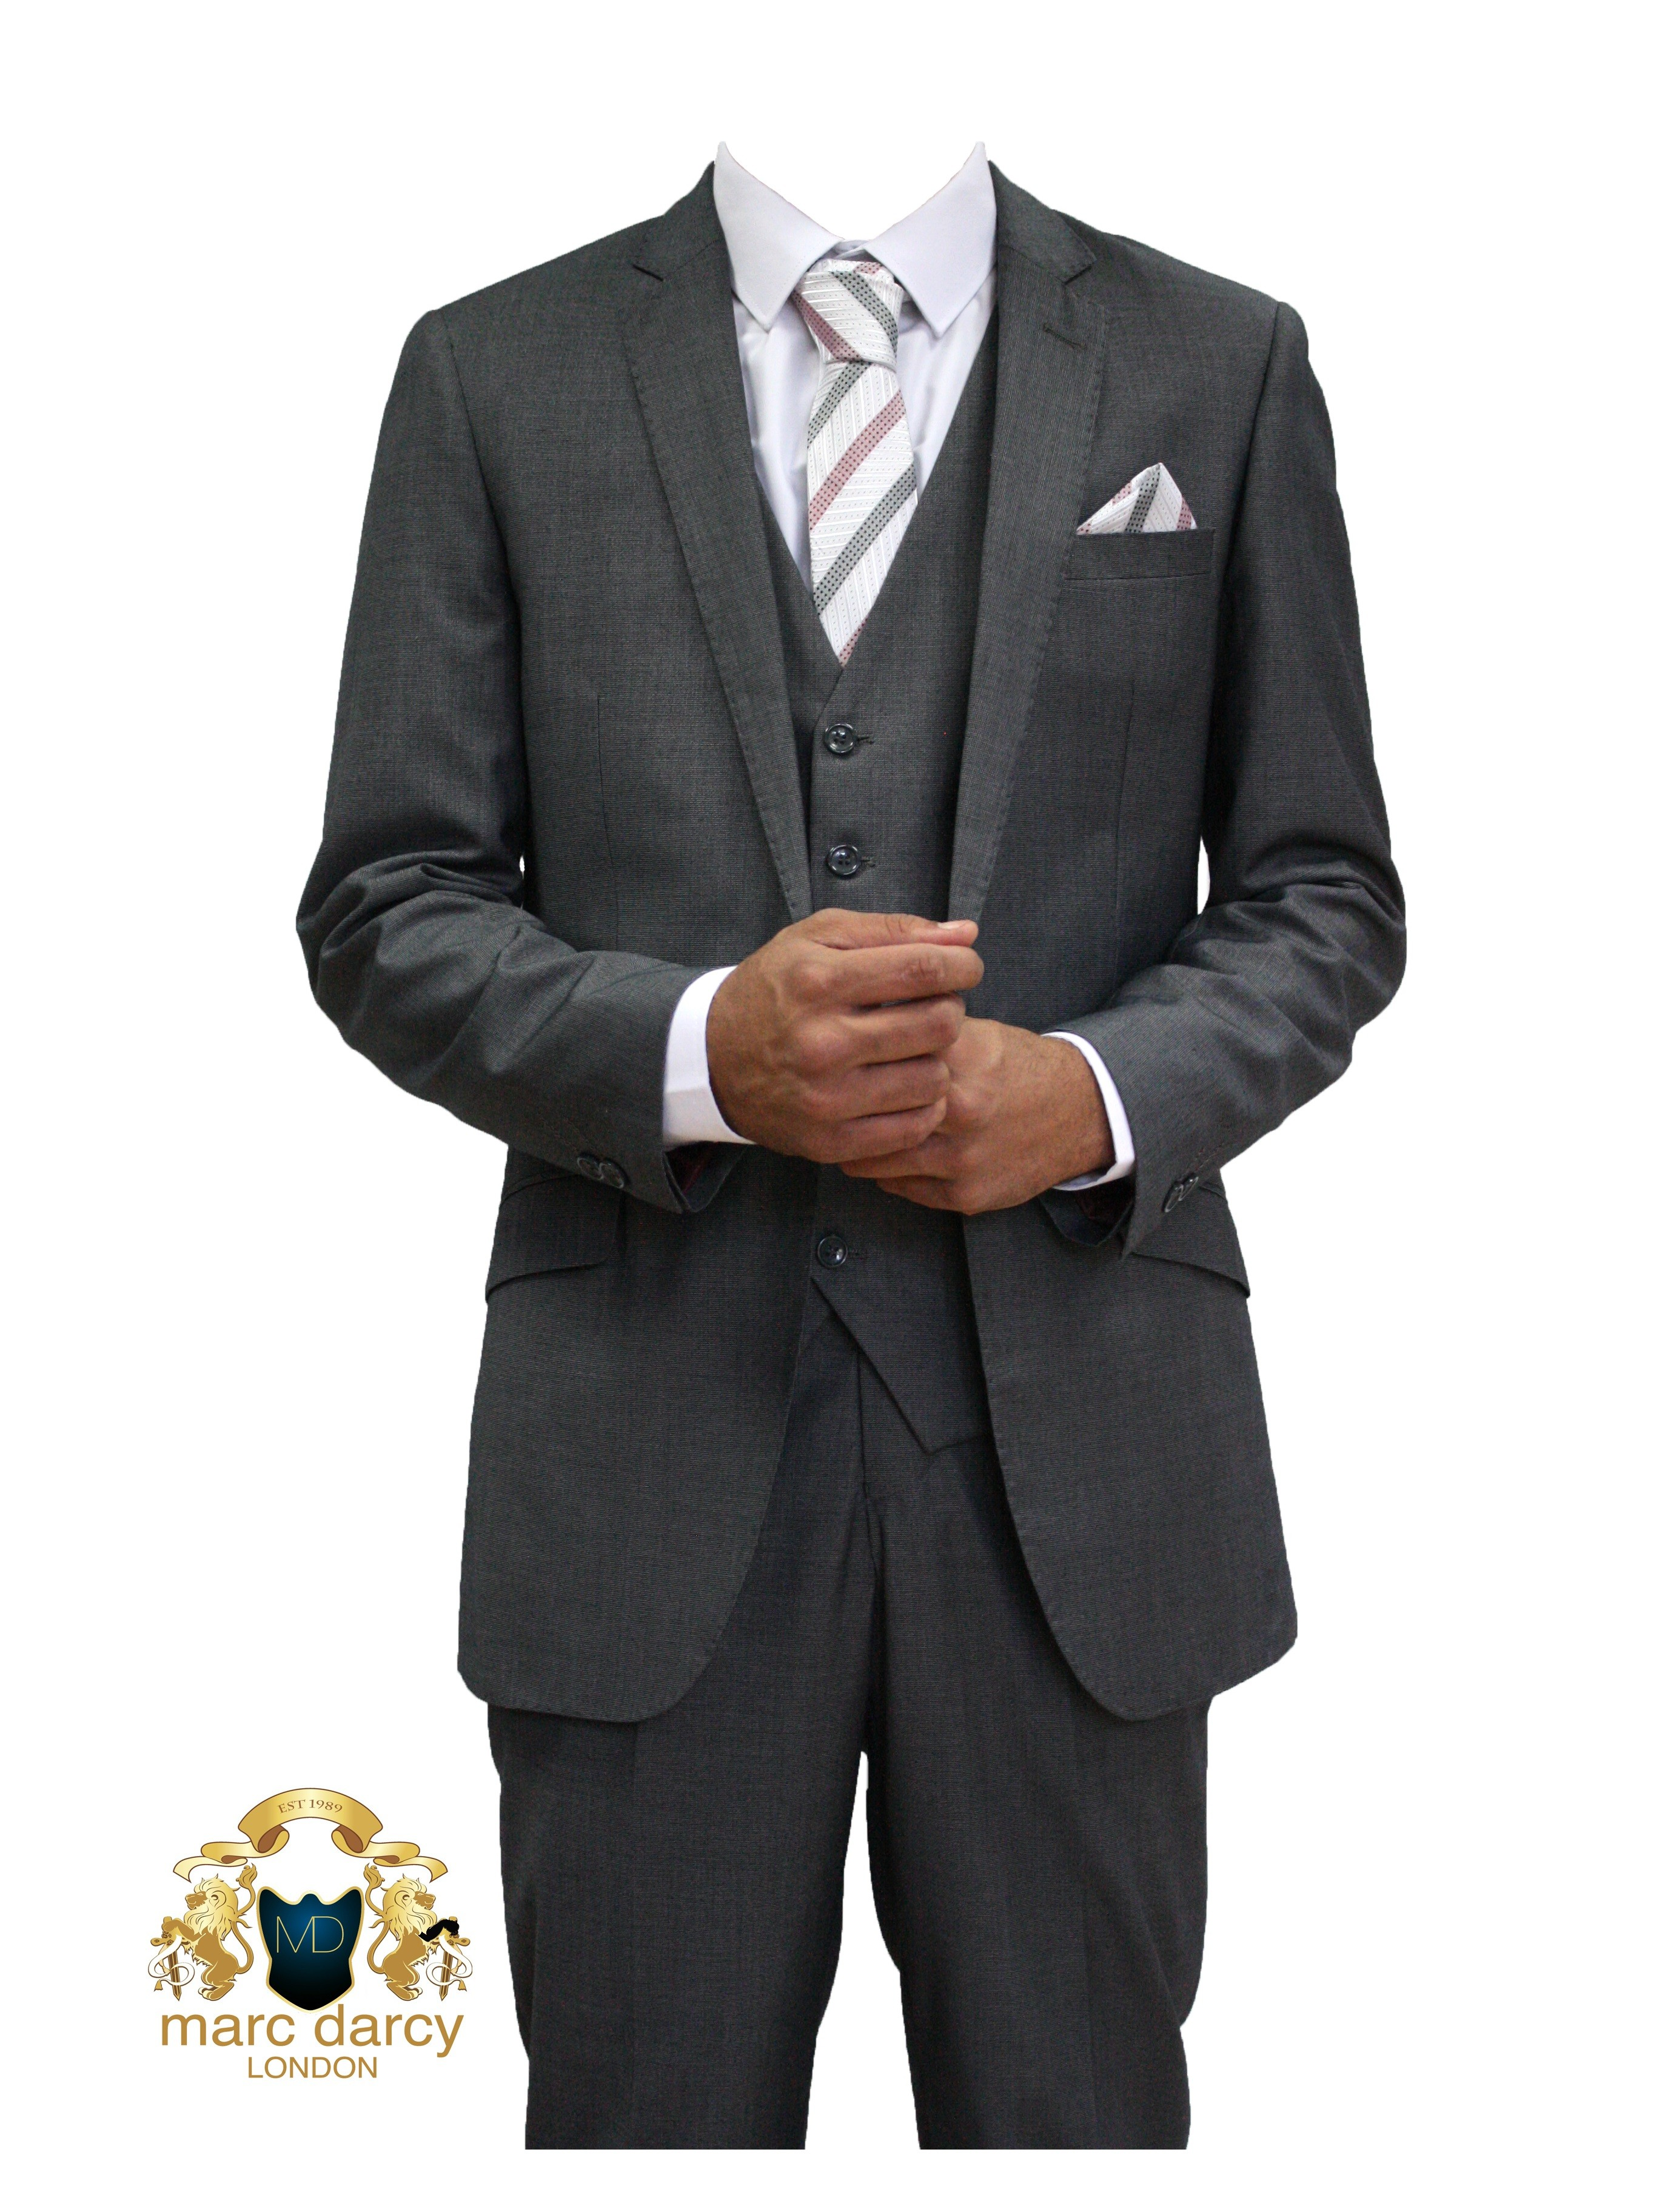 Comments on 2 three piece suits for wedding | Styleforum